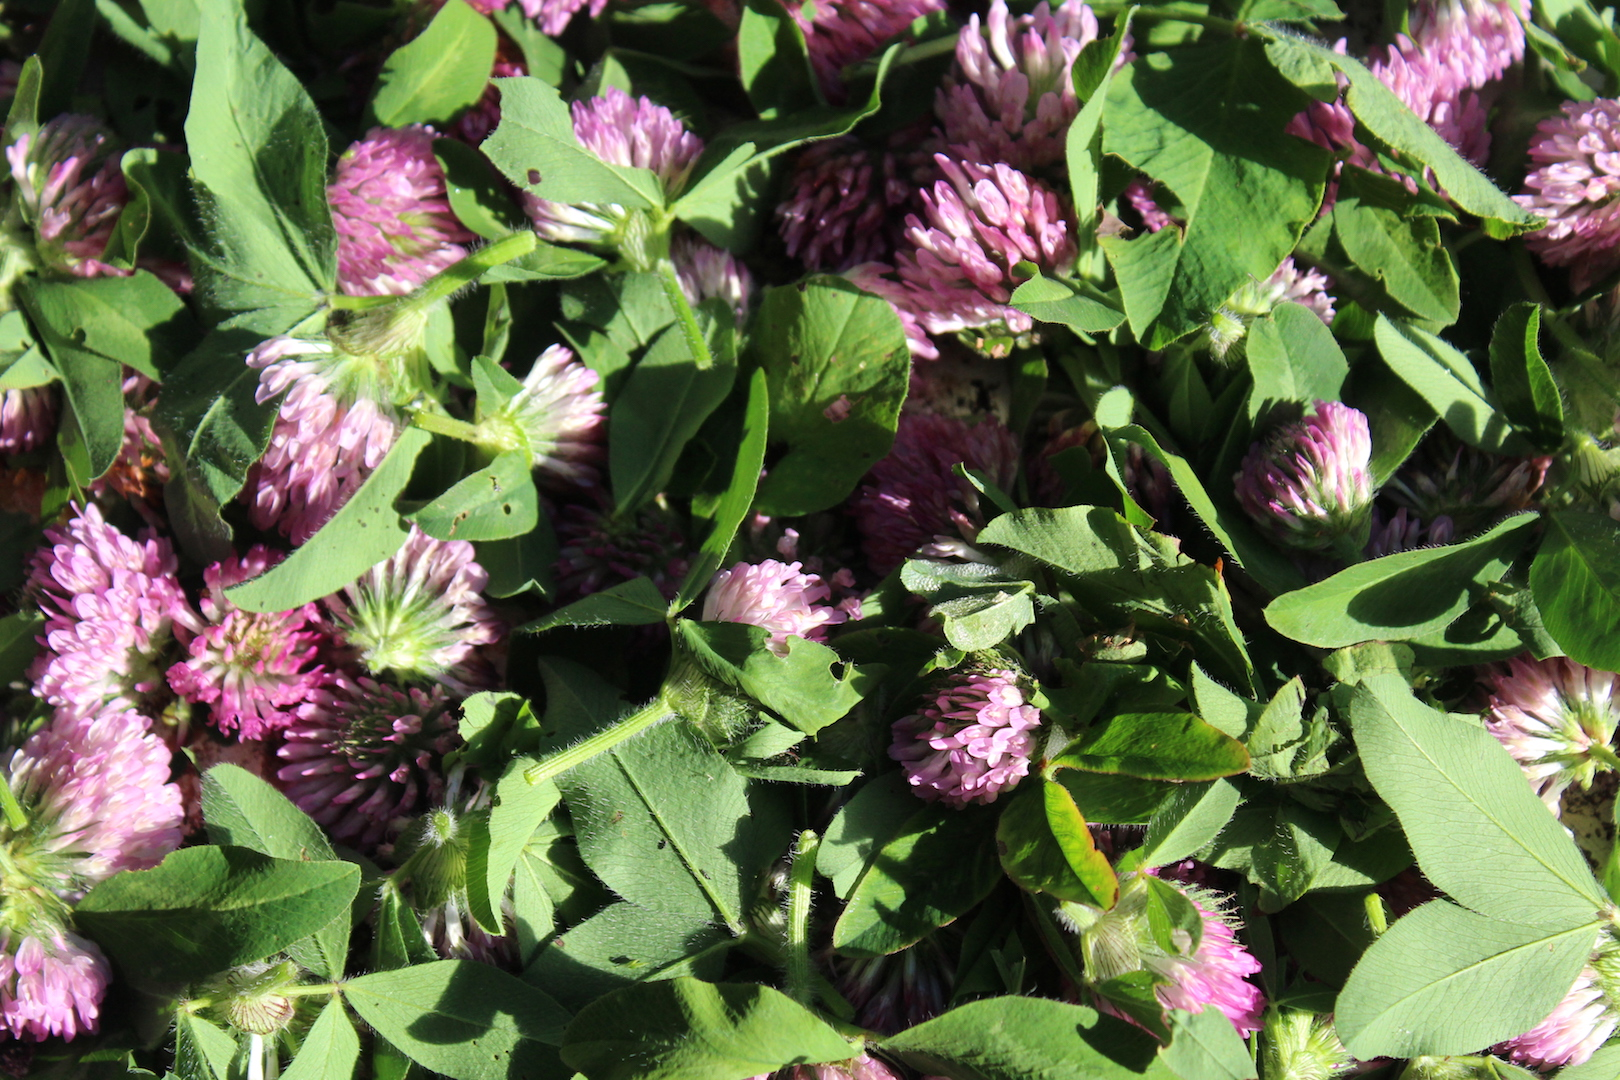 Drying Clover Blossoms